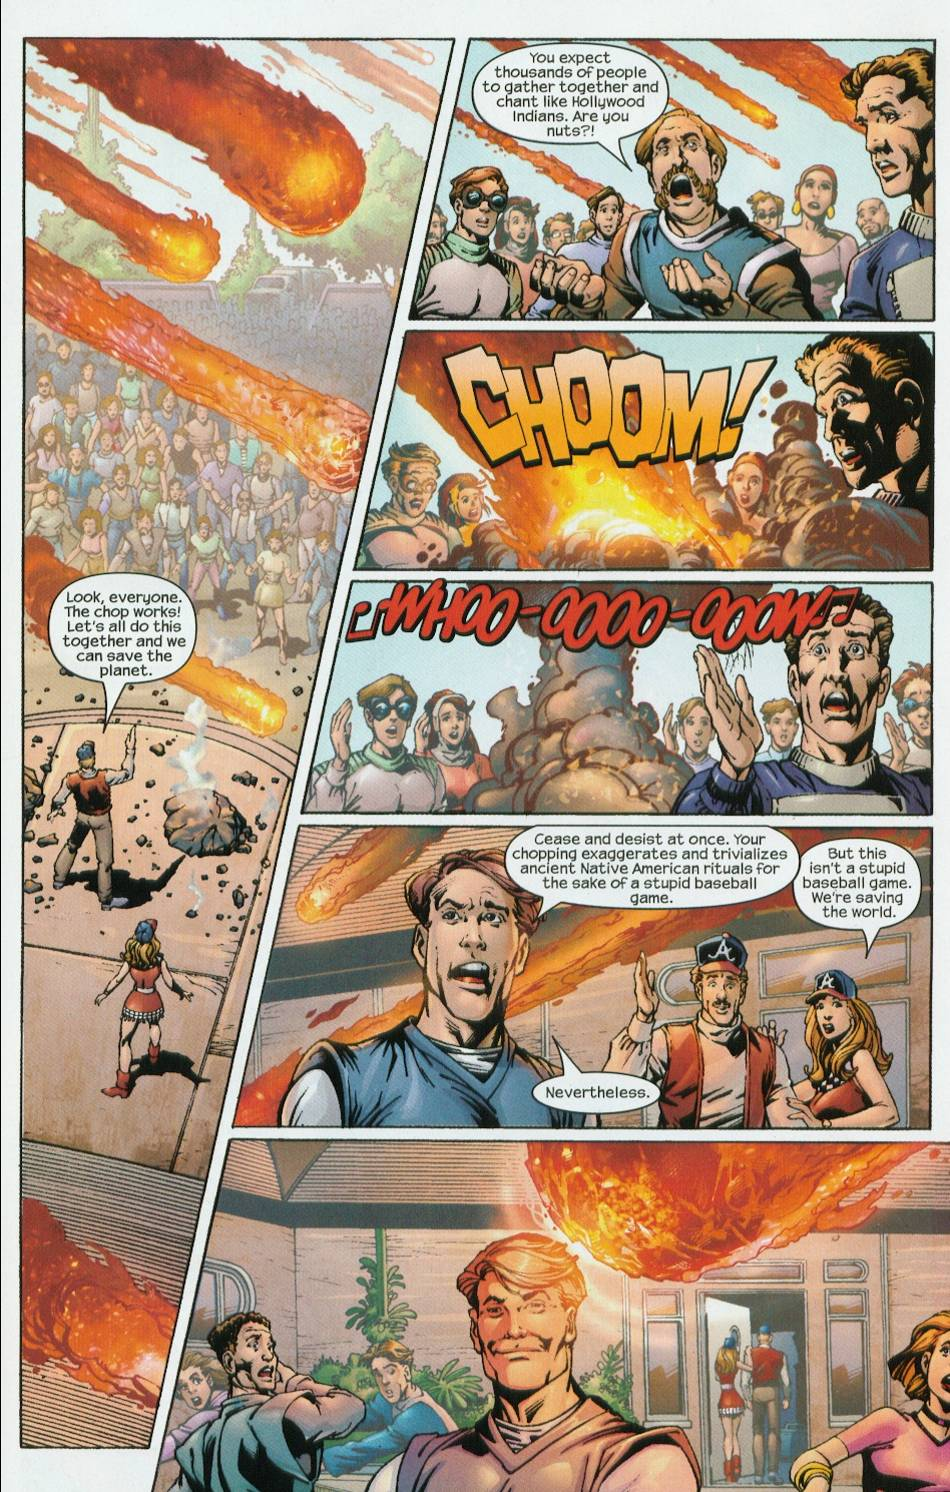 All the comedy of the early 90s, packed into a comic from 2002. Urrrgh.